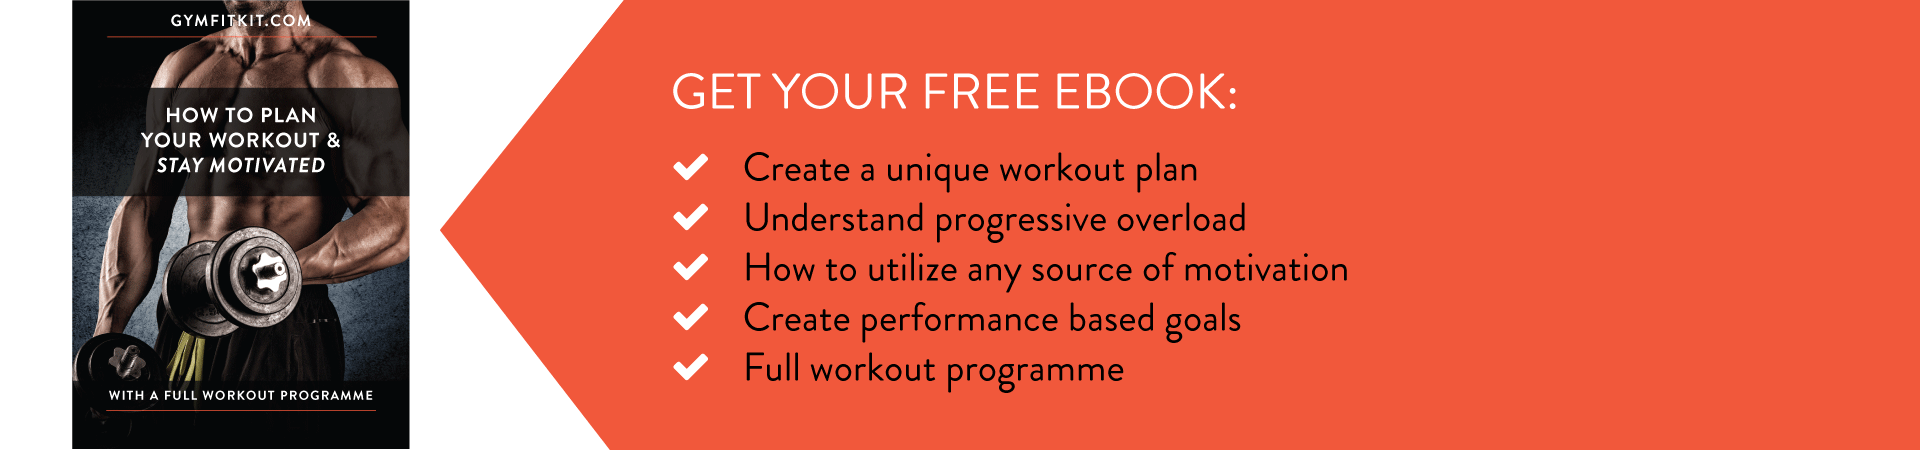 How to plan your workout ebook